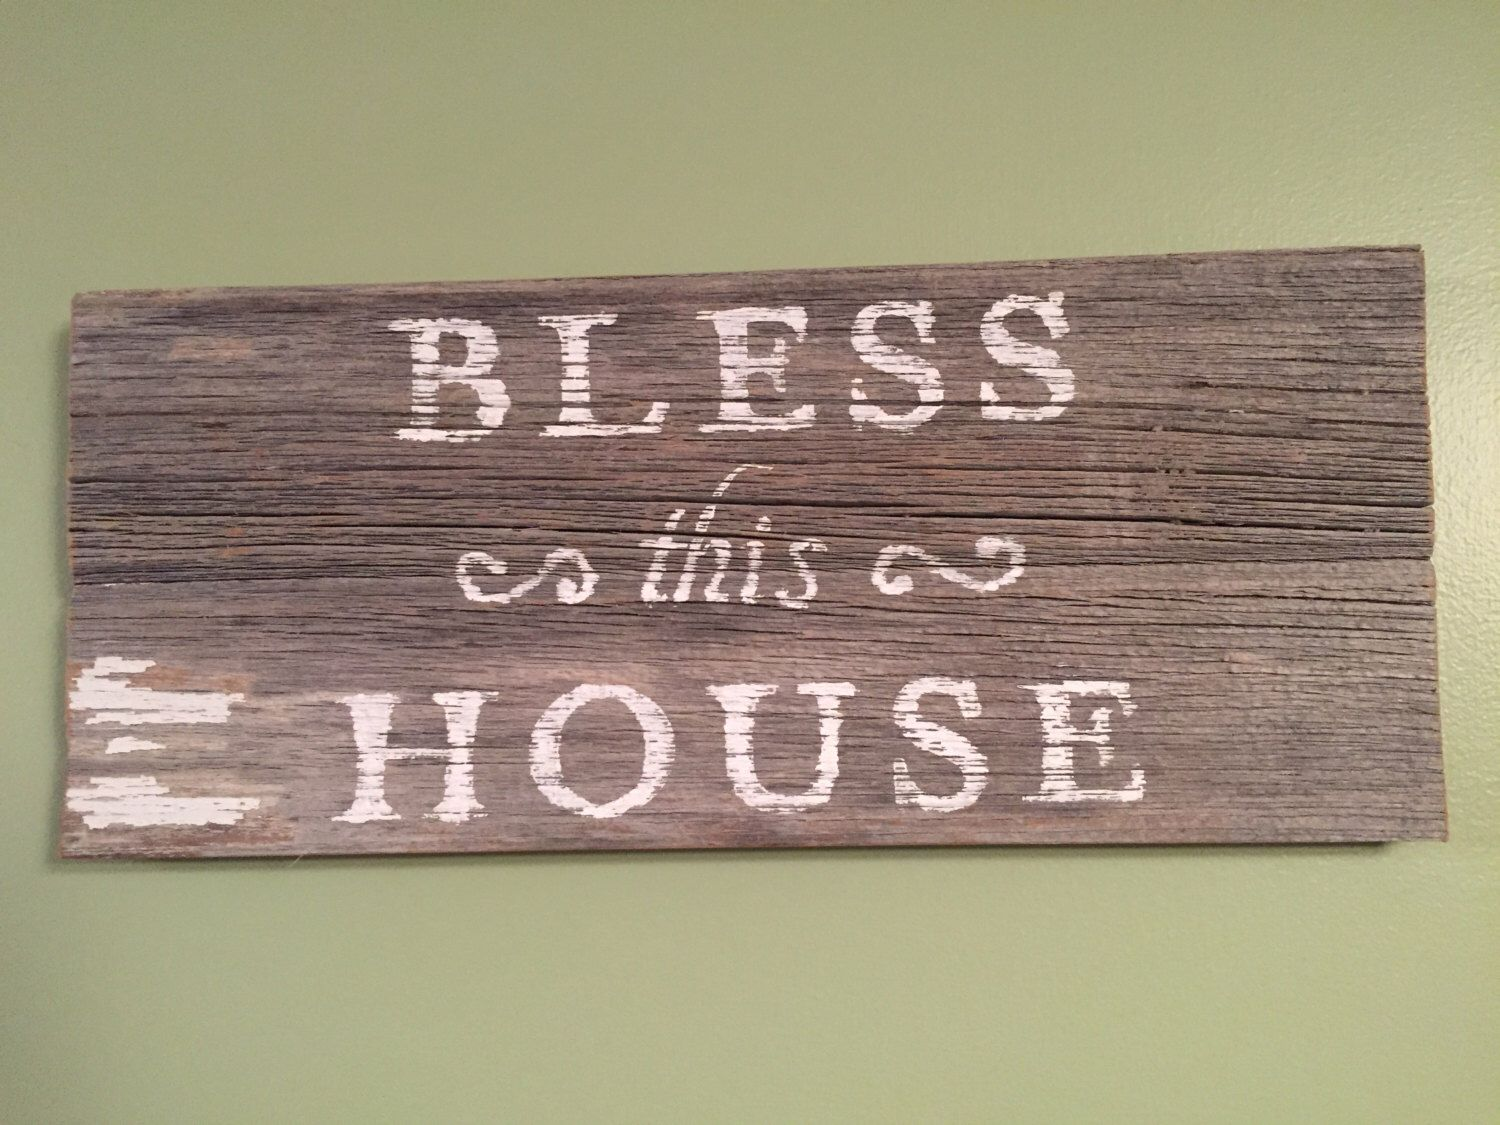 """Bless this House Barn Wood Sign Hand Painted Rustic Reclaimed Wood 14""""x6"""" Country Farm house Decor Wall Hanging by ReannasCountryDecor on Etsy https://www.etsy.com/listing/222922977/bless-this-house-barn-wood-sign-hand"""